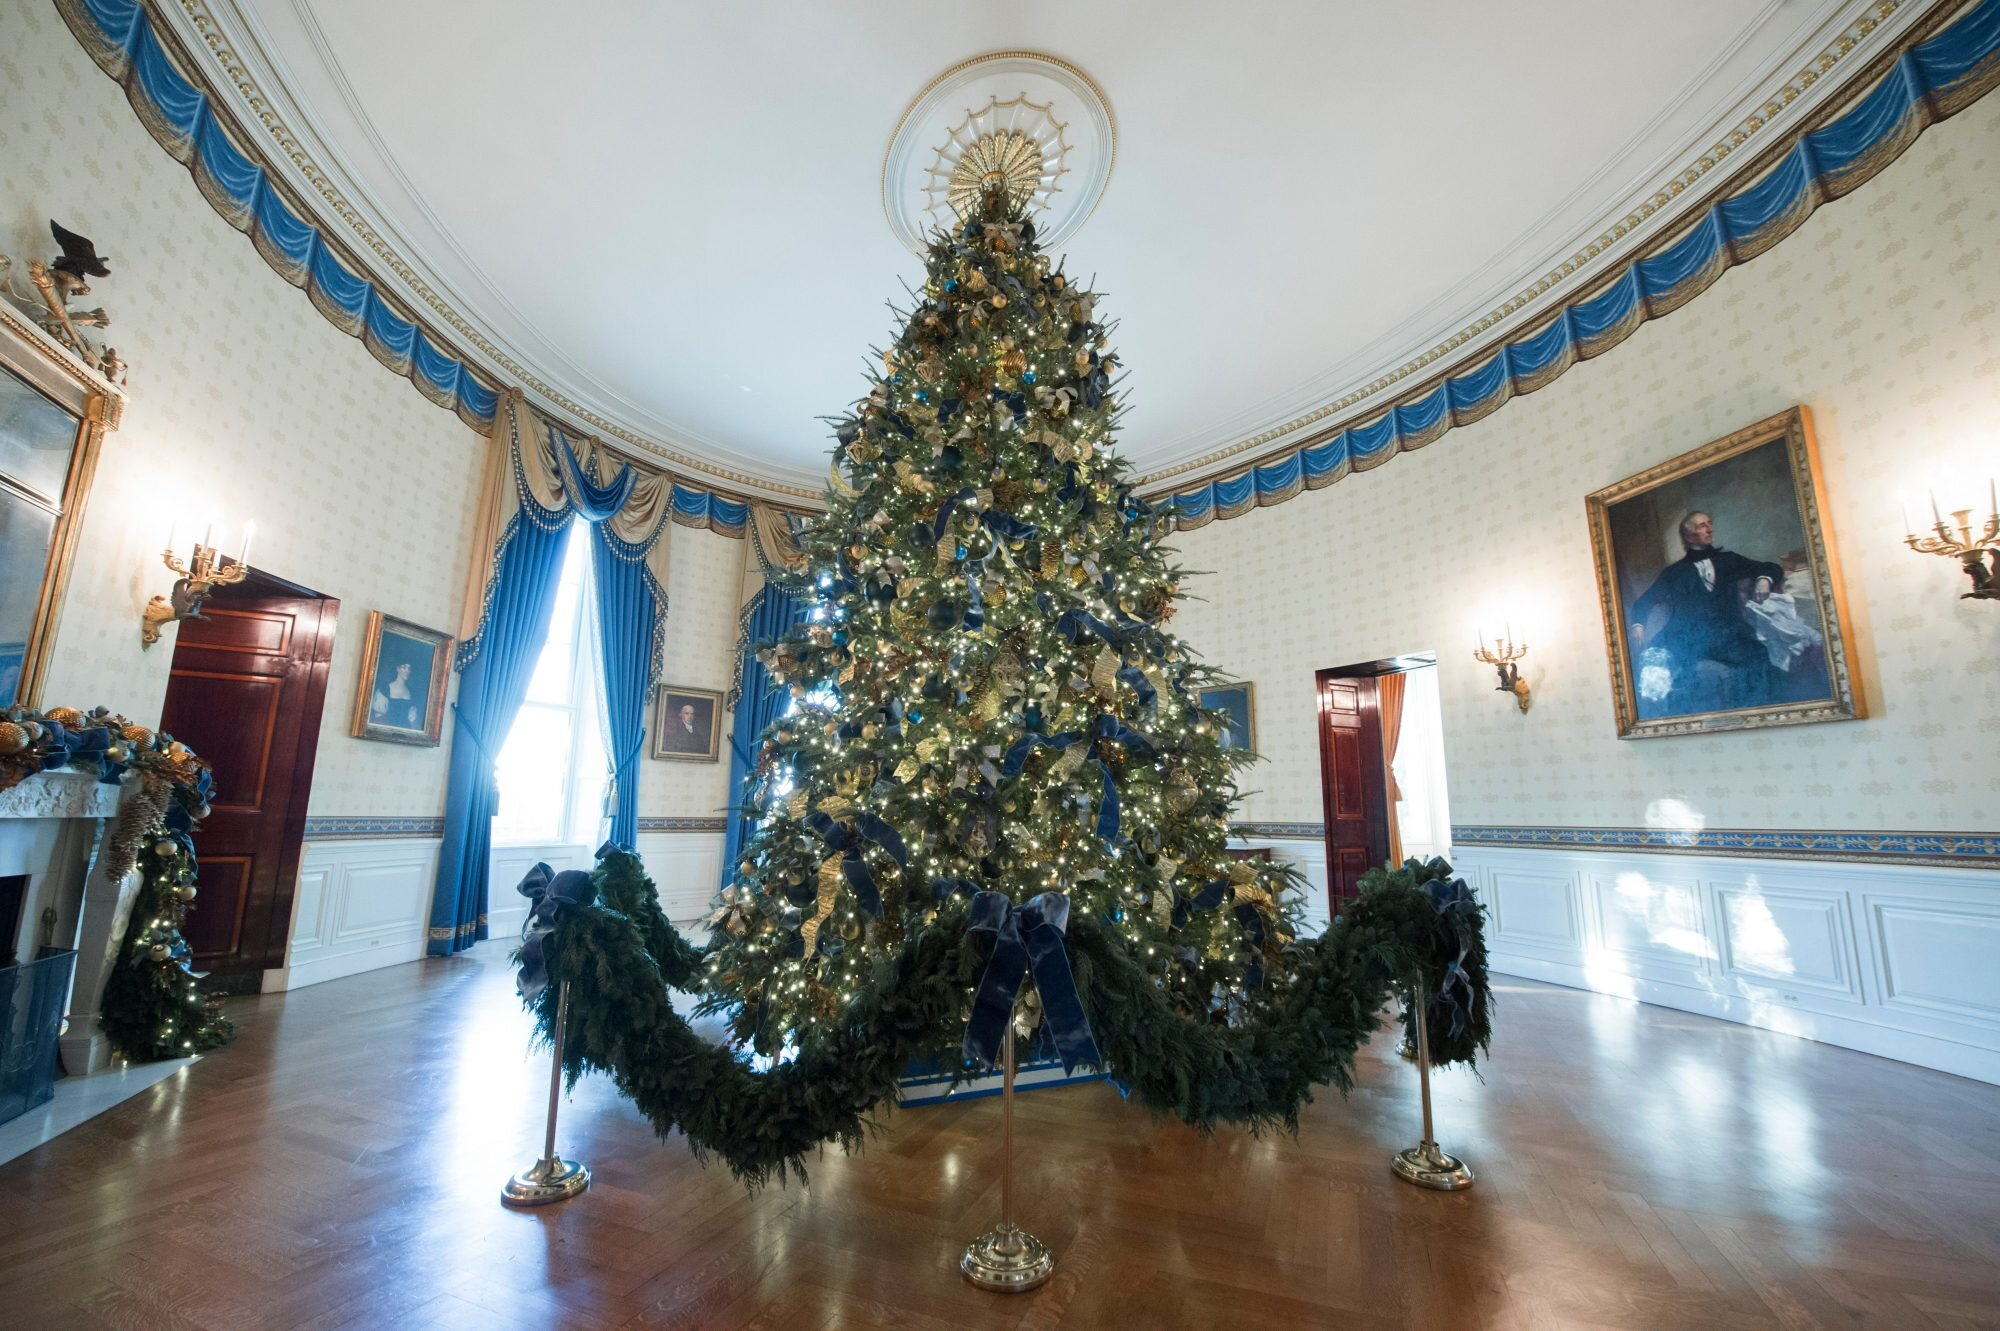 HGTV Is Airing Its White House Christmas Special This Week ... Nativity House Plans on christmas plans, train plans, halloween plans, temple plans, sheep plans, outdoor wooden manger plans, birth plans, church plans, life plans, marriage plans, sleigh plans,